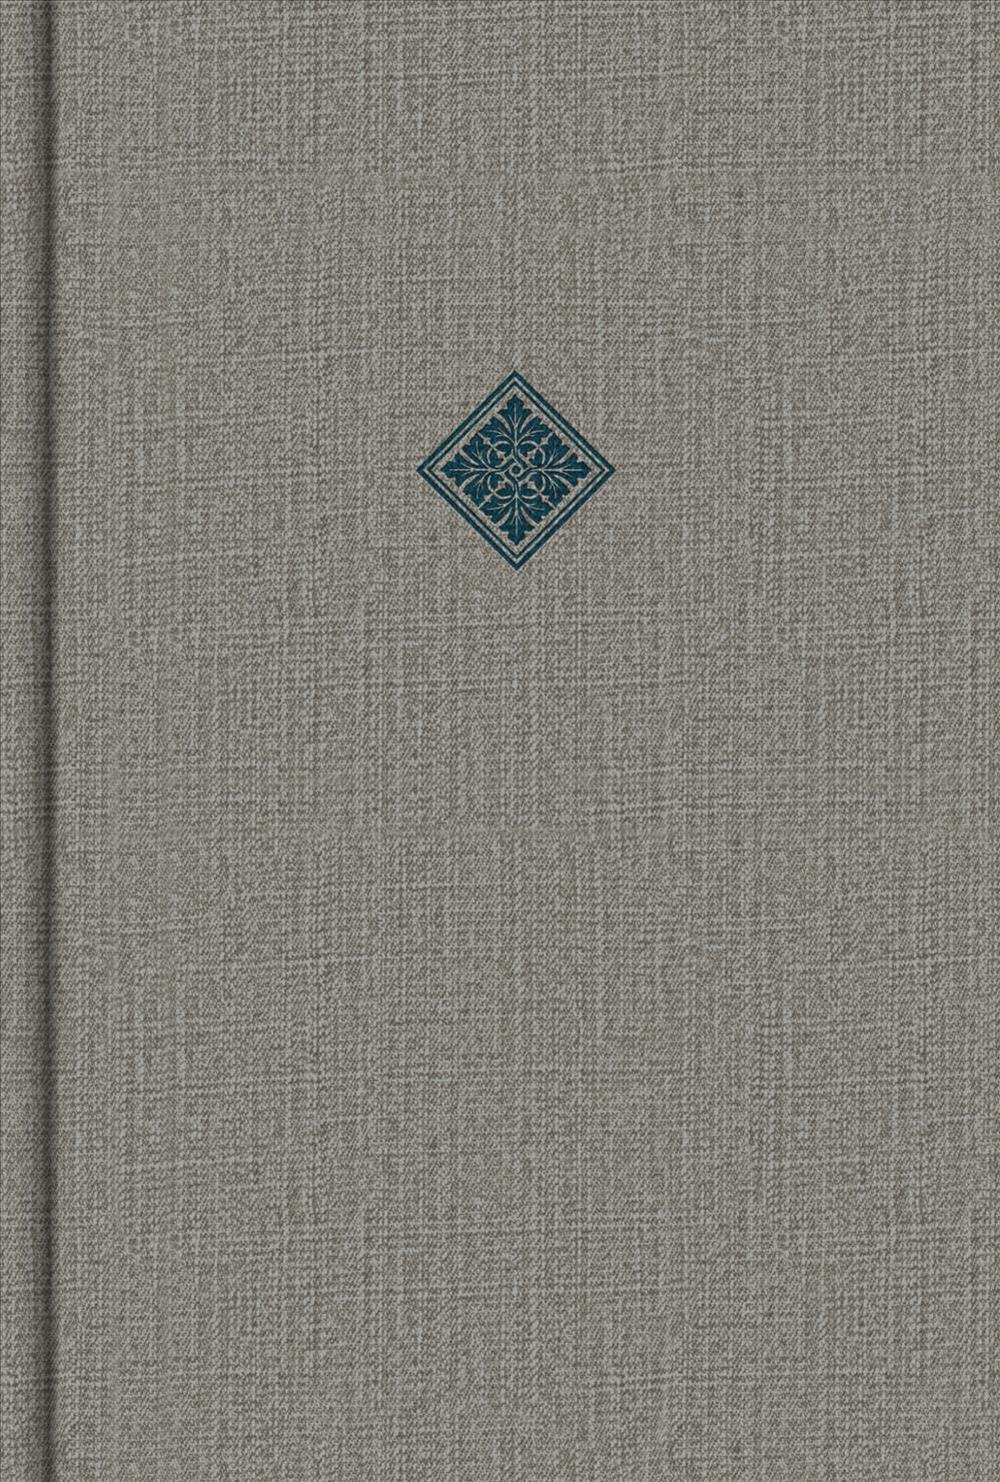 CSB Reader's Bible, Gray Cloth Over Board